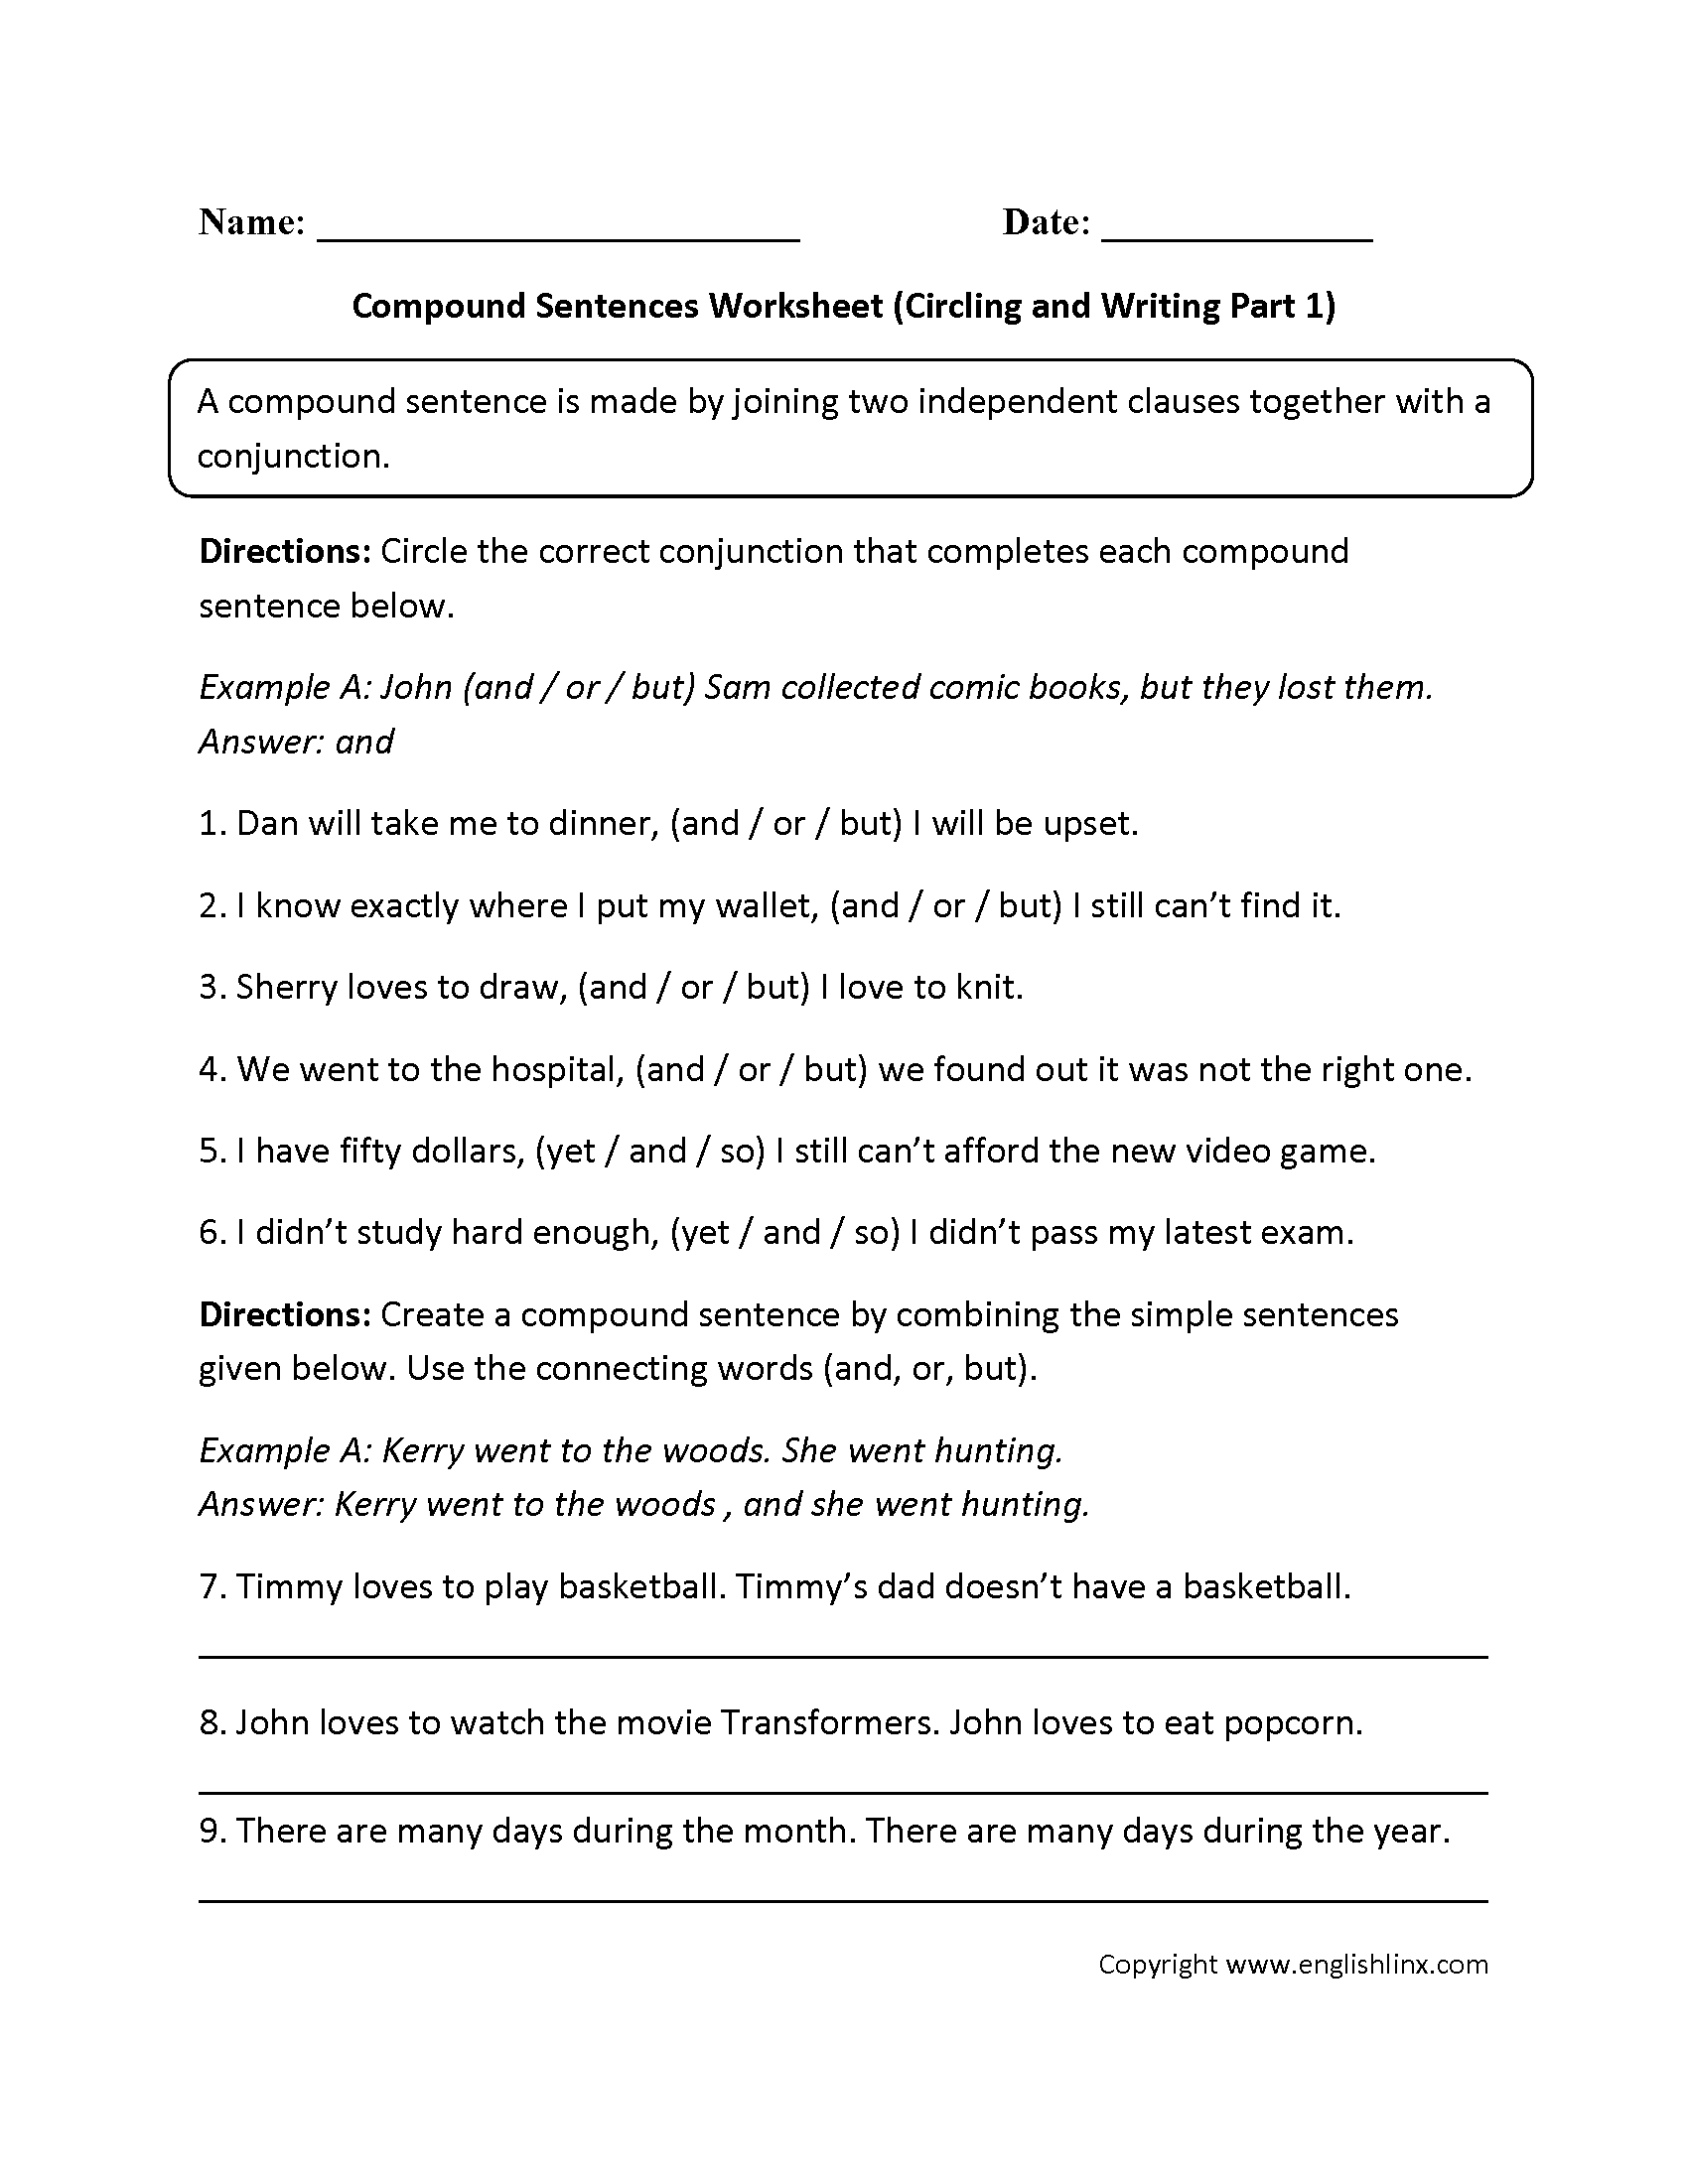 Worksheets Compound Sentence Worksheet sentences worksheets compound worksheet